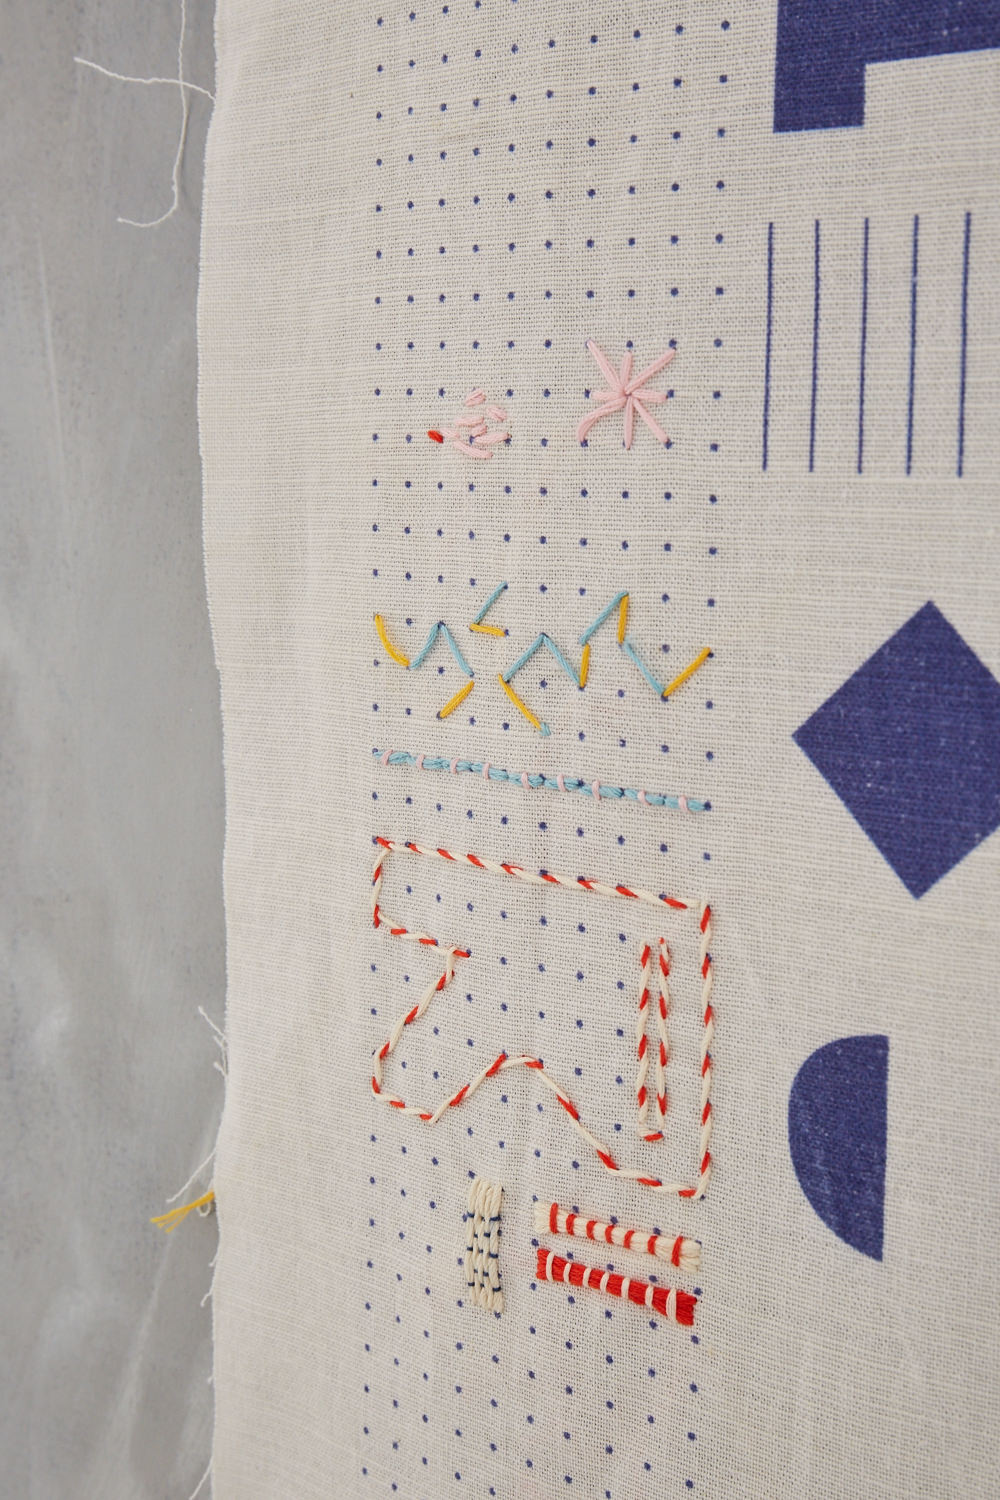 0006_Stitch_School_Makerversity_Somerset_House_Supper_Cloth.jpg